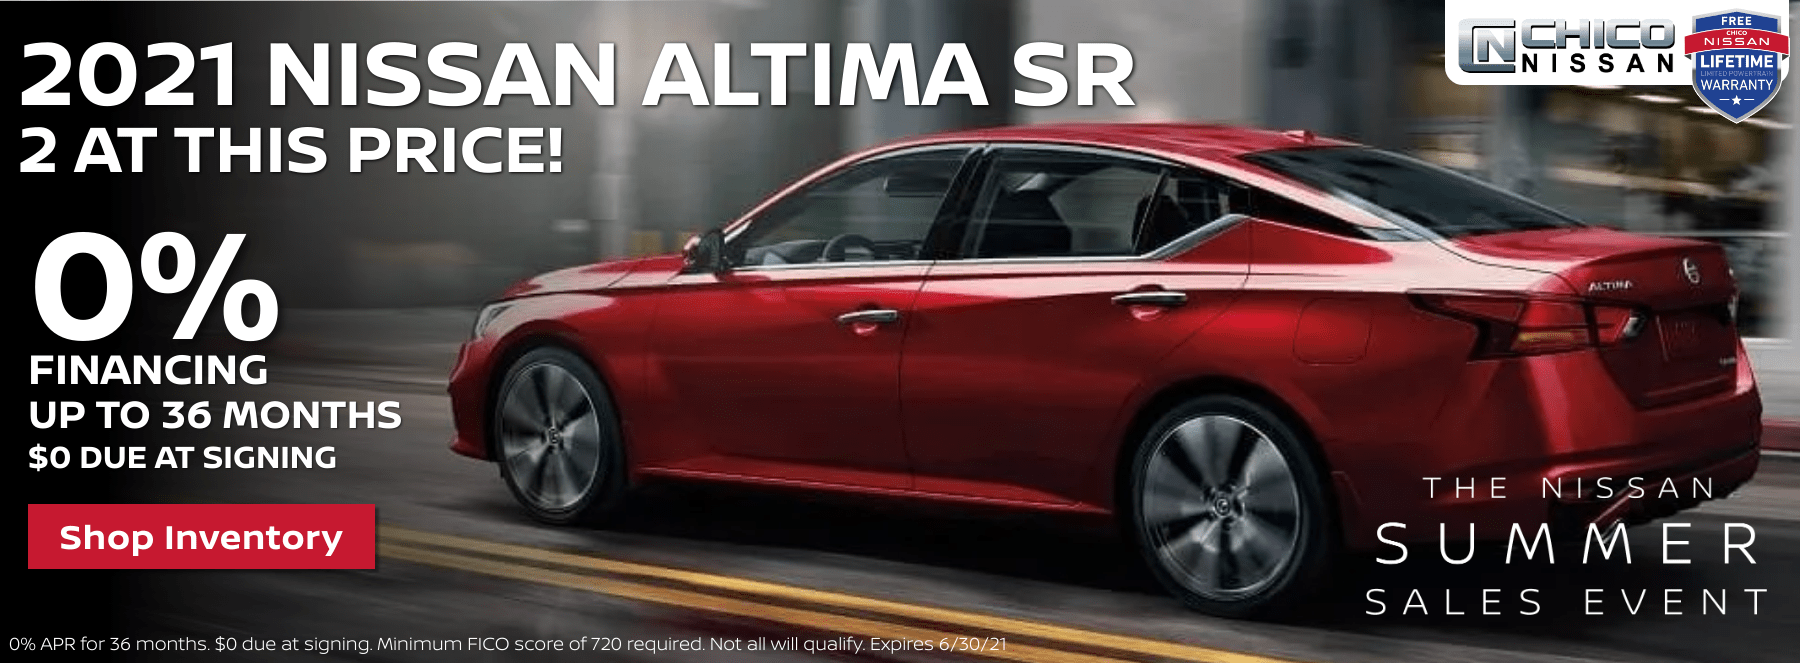 Copy of APR OFFER for Altima SR-1800x663px